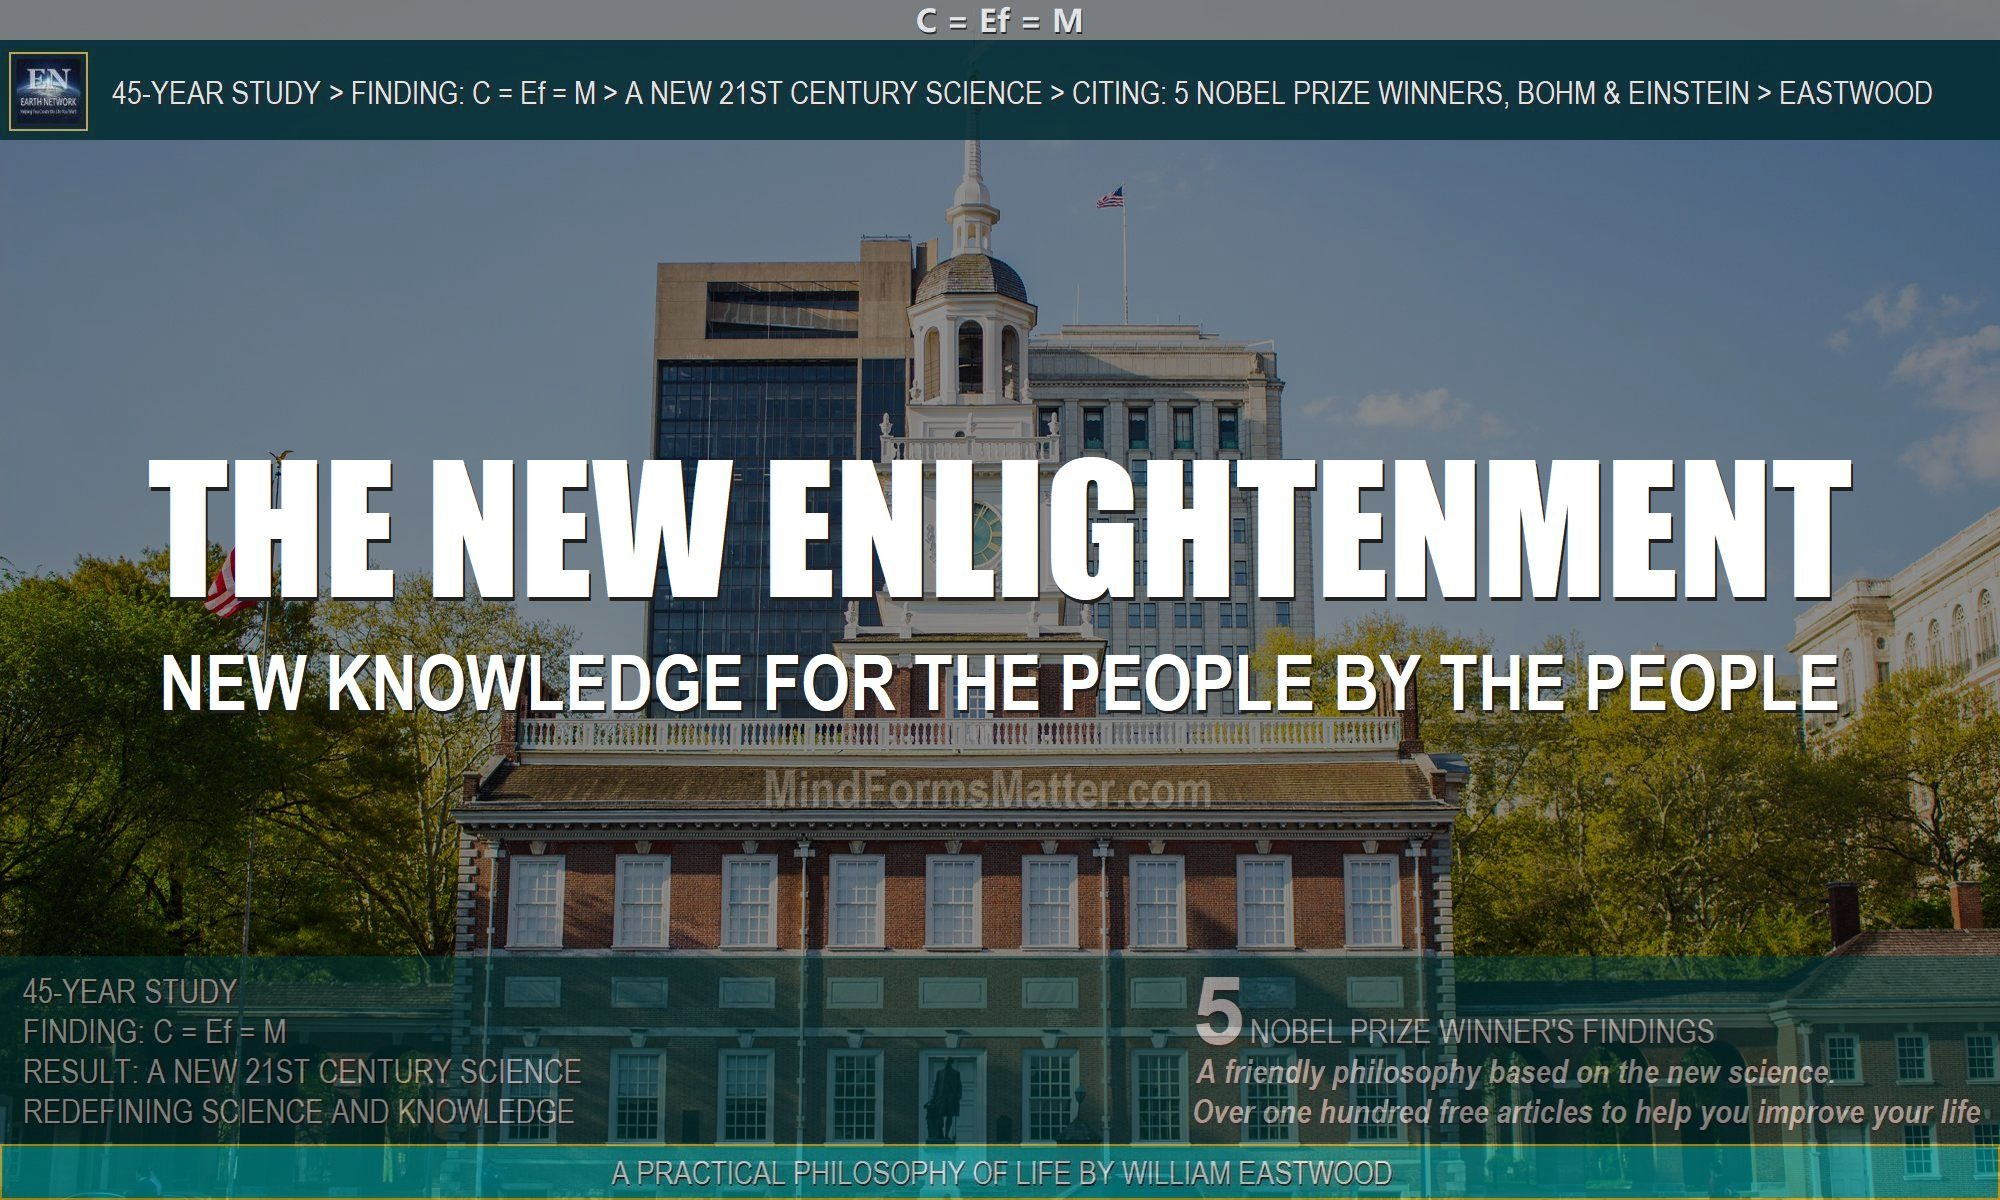 independence hall depicts new knowledge by the people for the people and the earth network altruistic movement founded by William Eastwood in 2000 to advance humanity to a new and better future and renewed civilization.